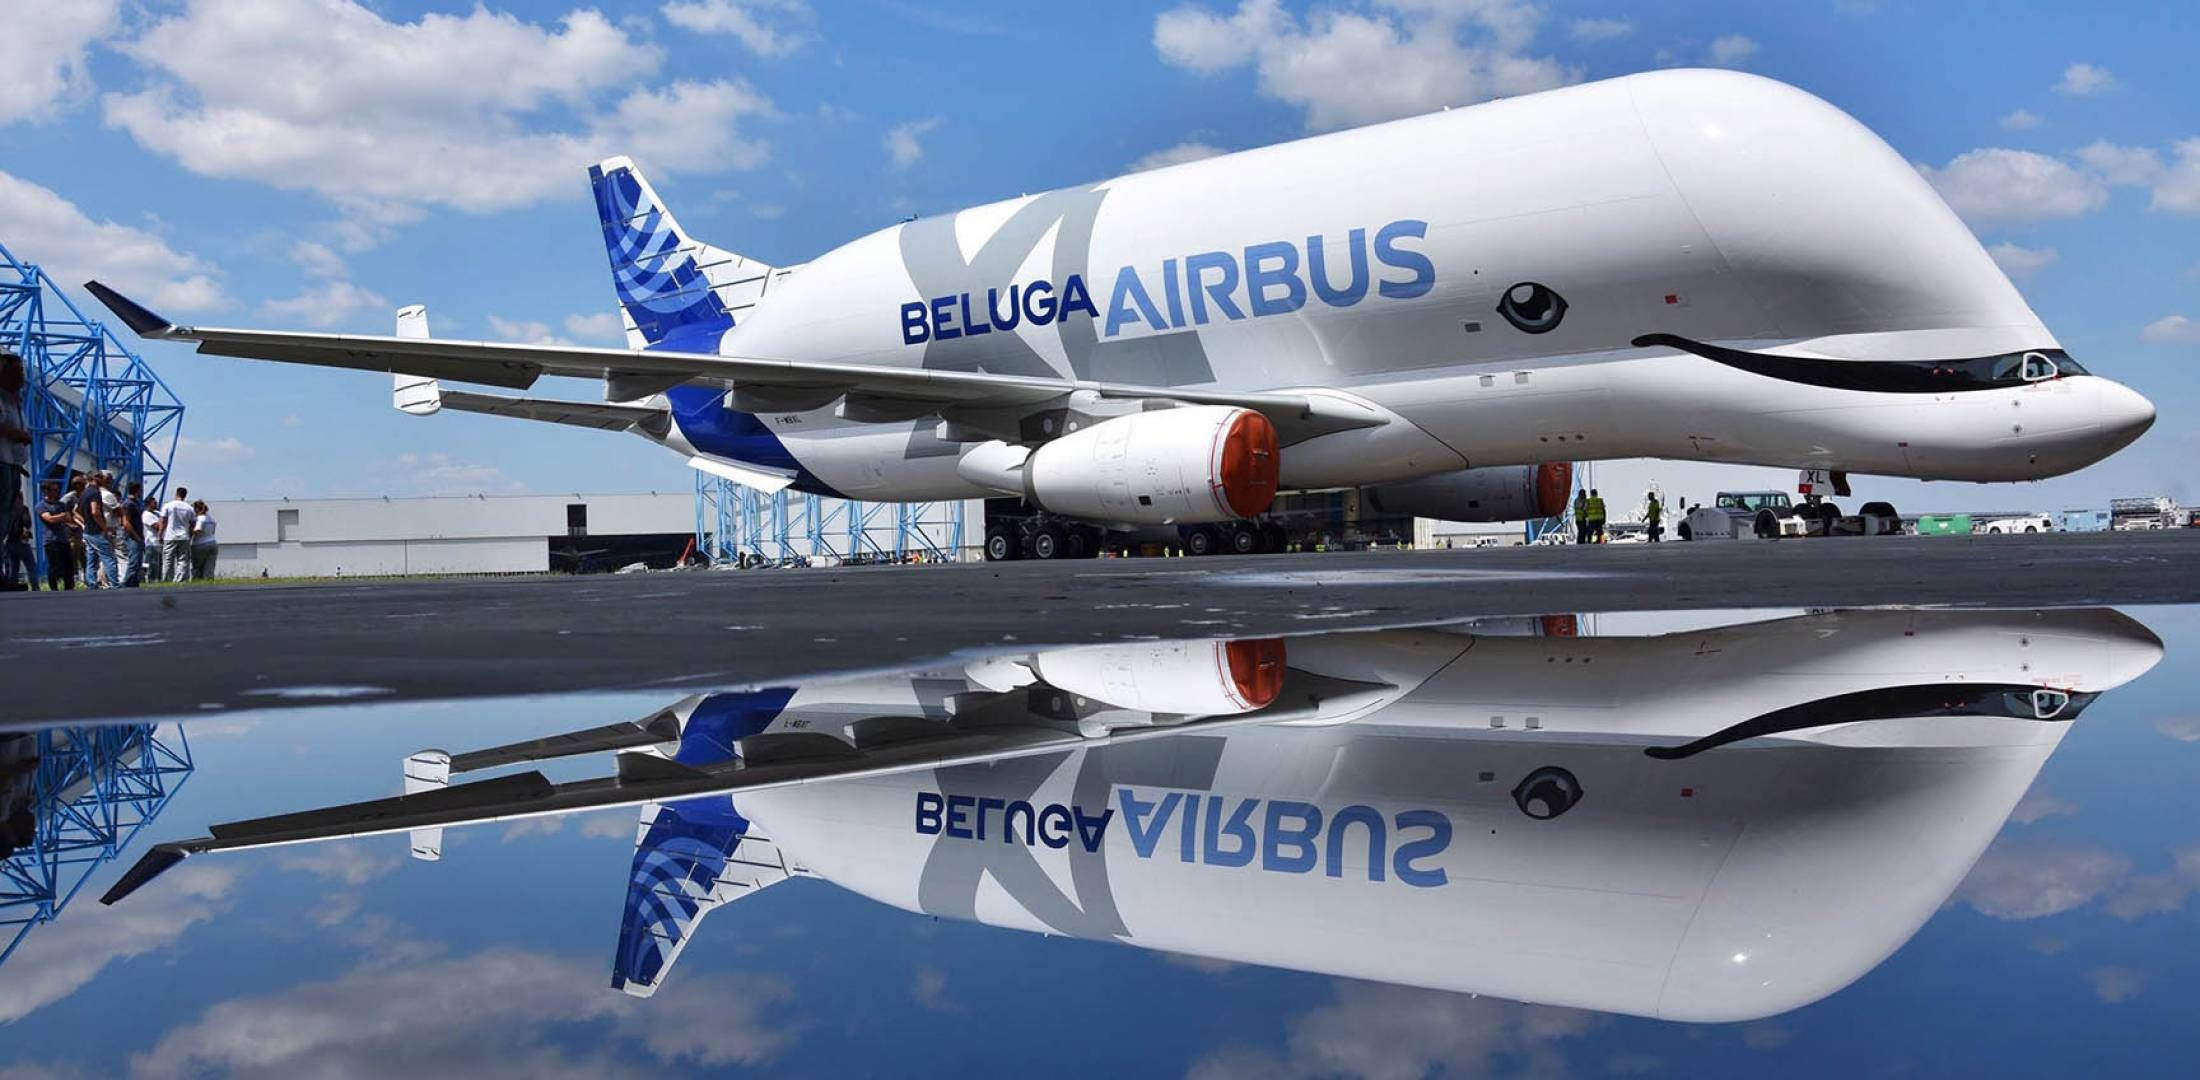 Airbus Beluga Xl Flew For The First Time In July Of 2018 Airbus